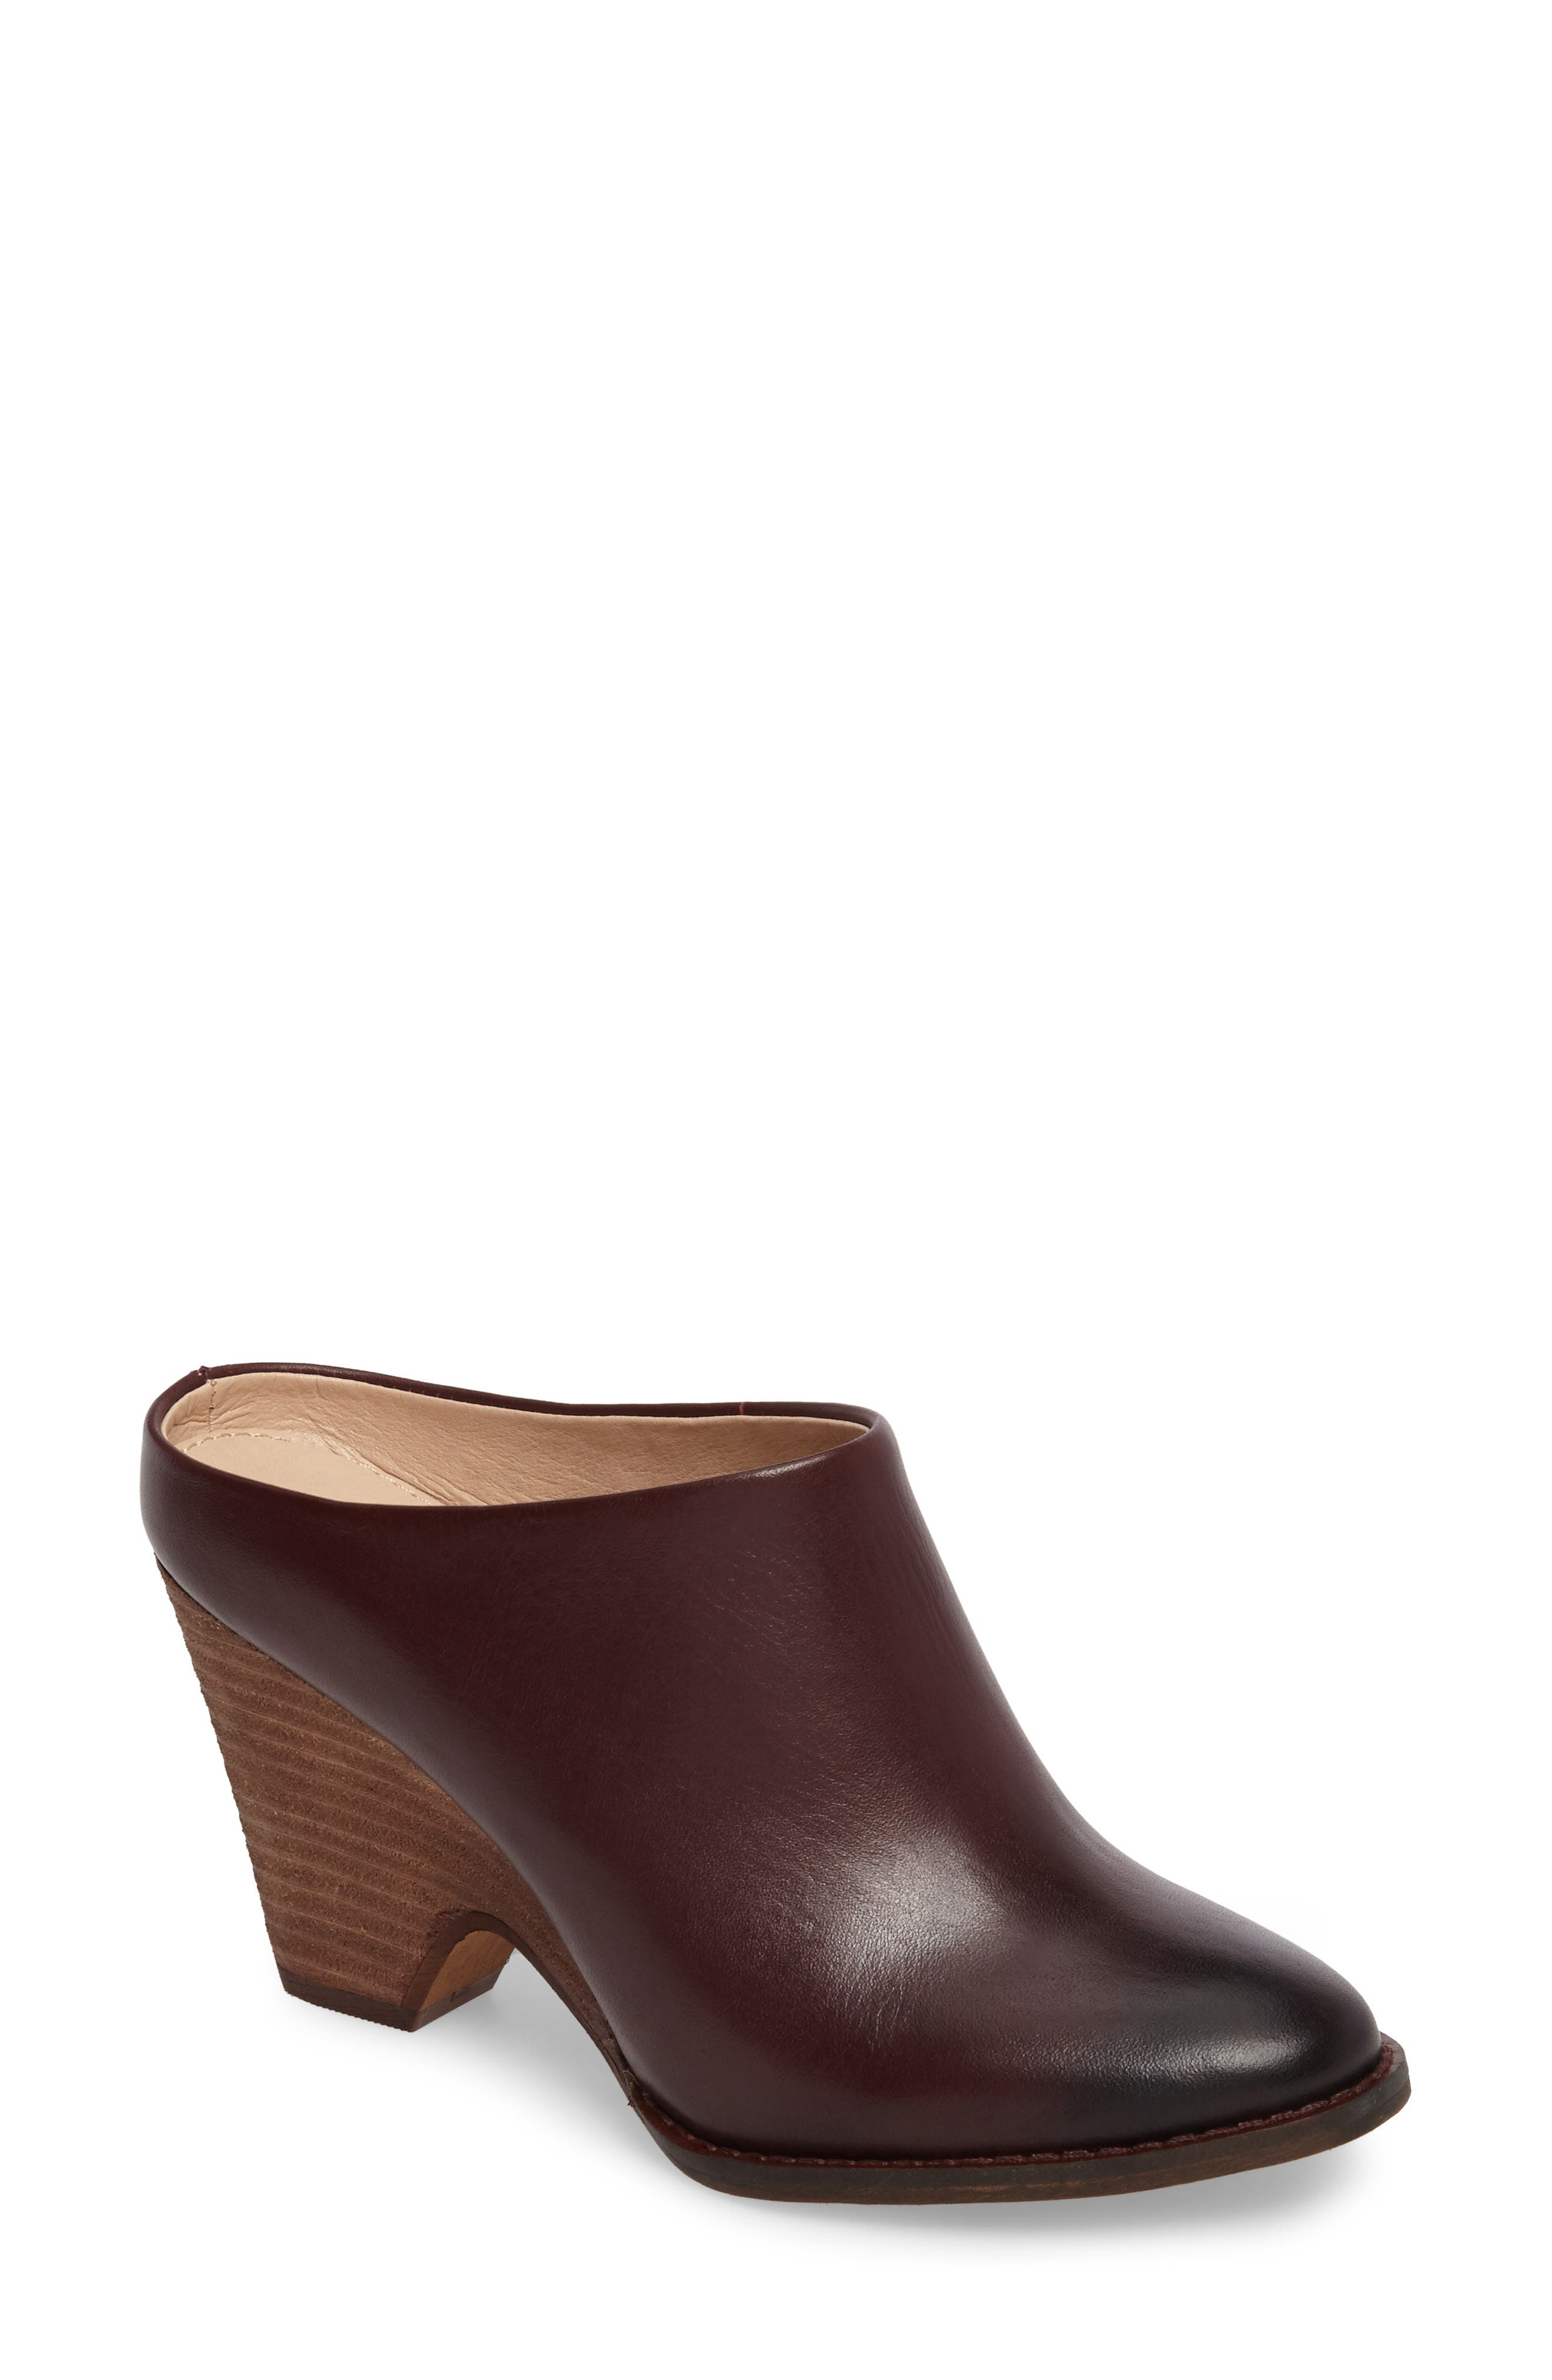 KELSI DAGGER BROOKLYN Hocking Mule